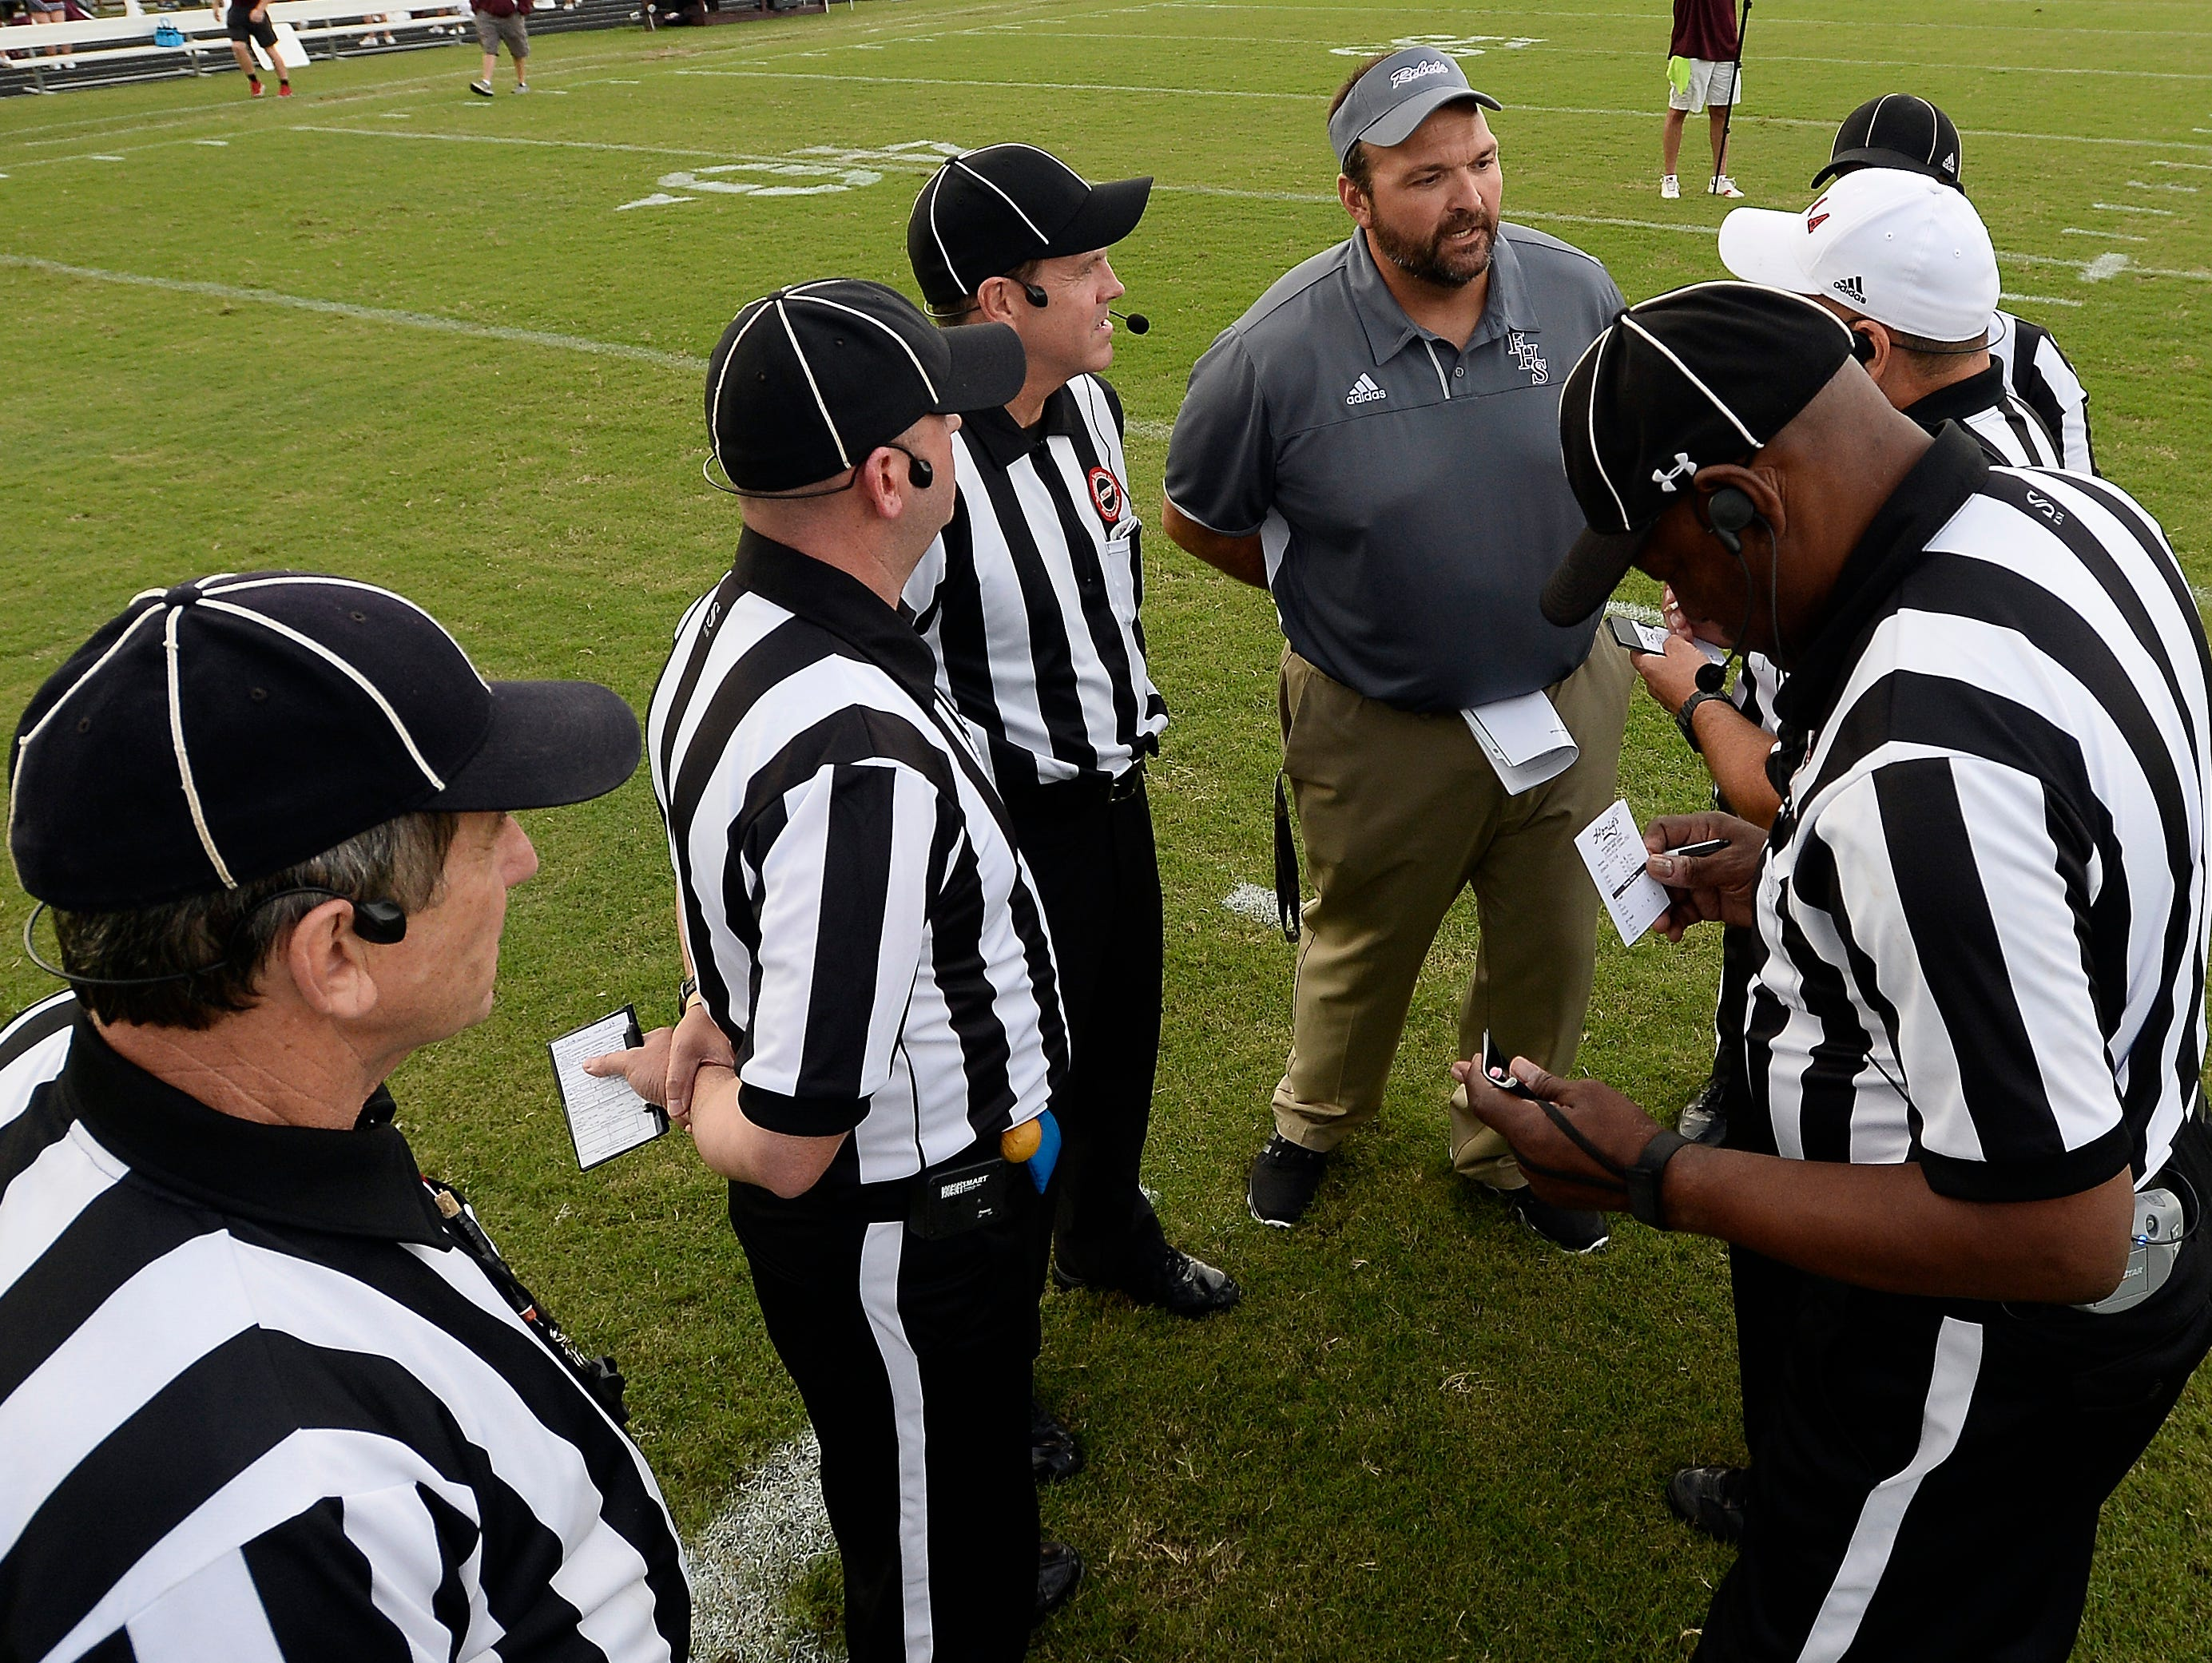 Franklin head coach Donnie Webb, top center, talks with TSSAA high school referees before the start of a game against Centennial on Friday, August 19, 2016, in Franklin.